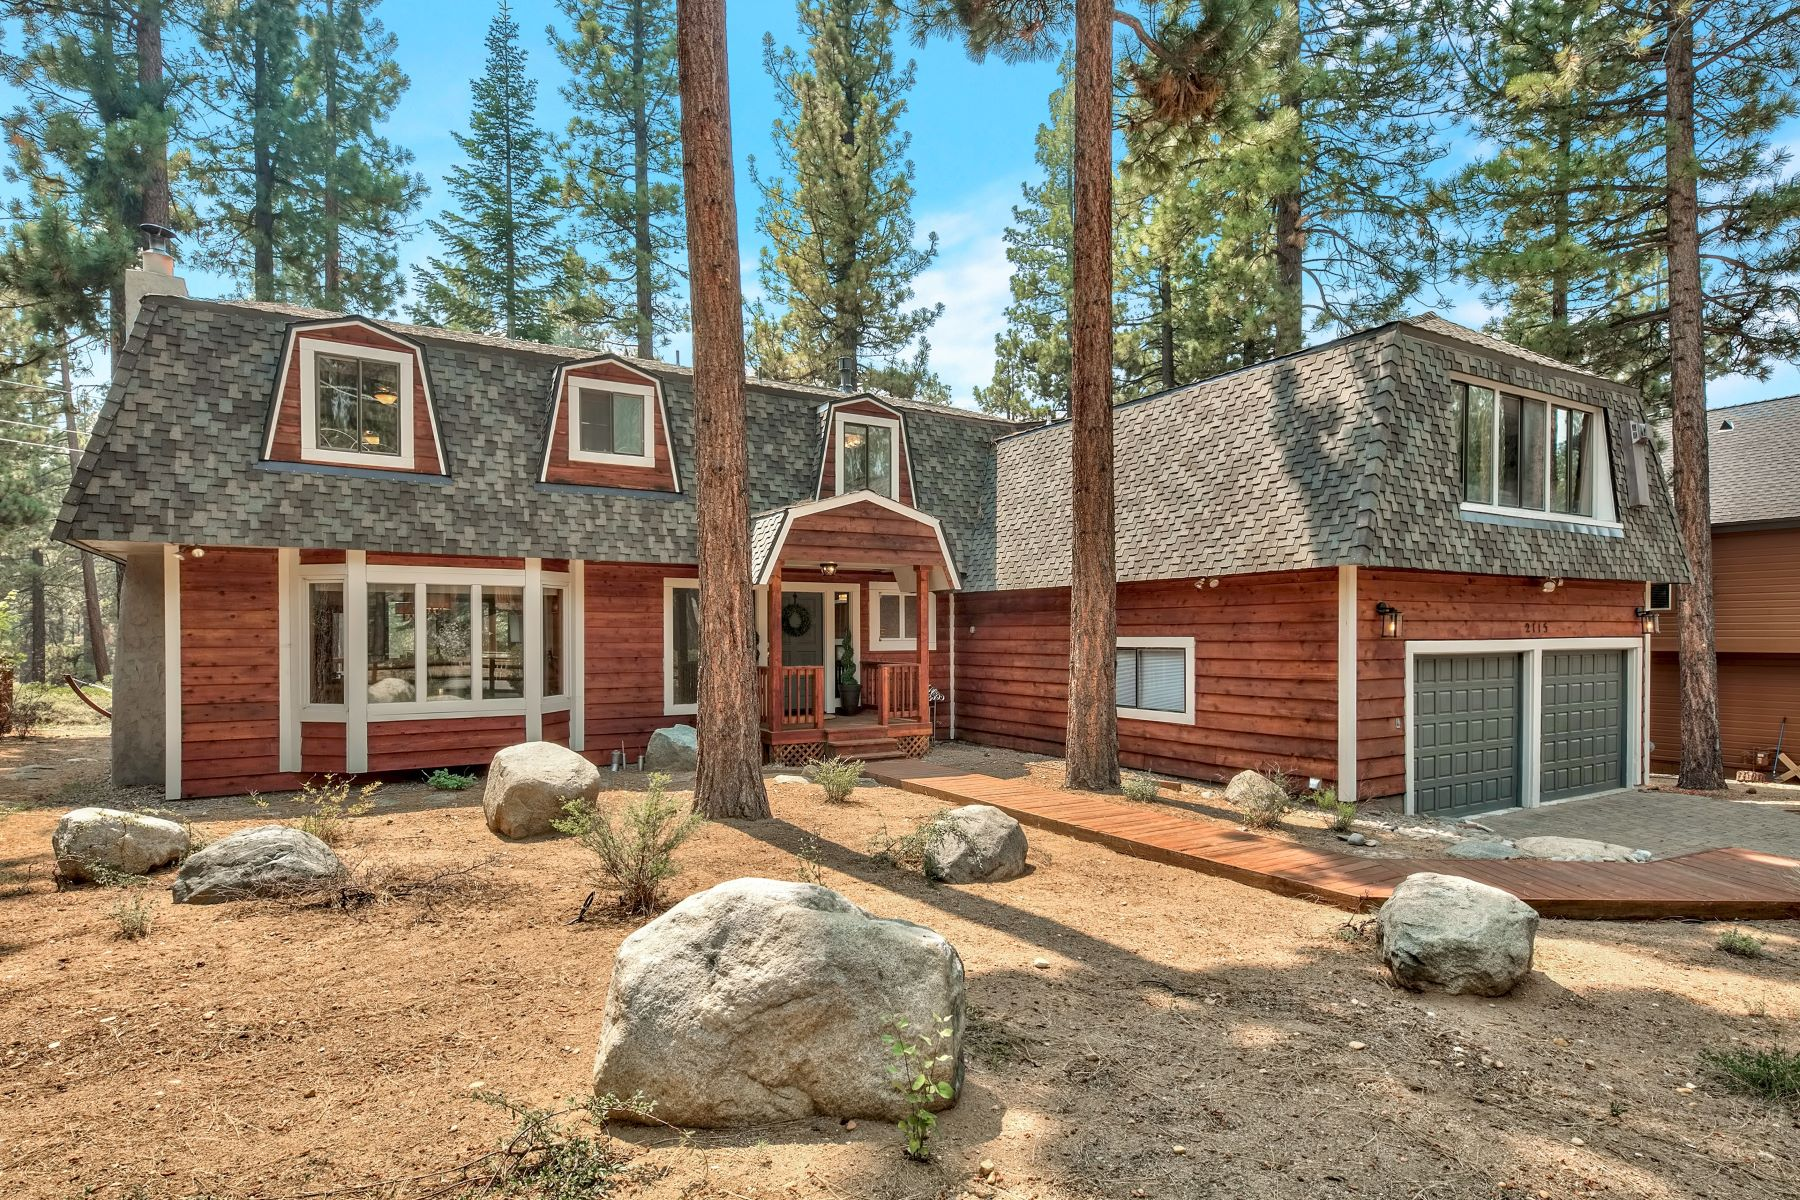 Single Family Homes for Active at Mountain Gem Backing Forest 2115 Marshal Trail South Lake Tahoe, California 96150 United States